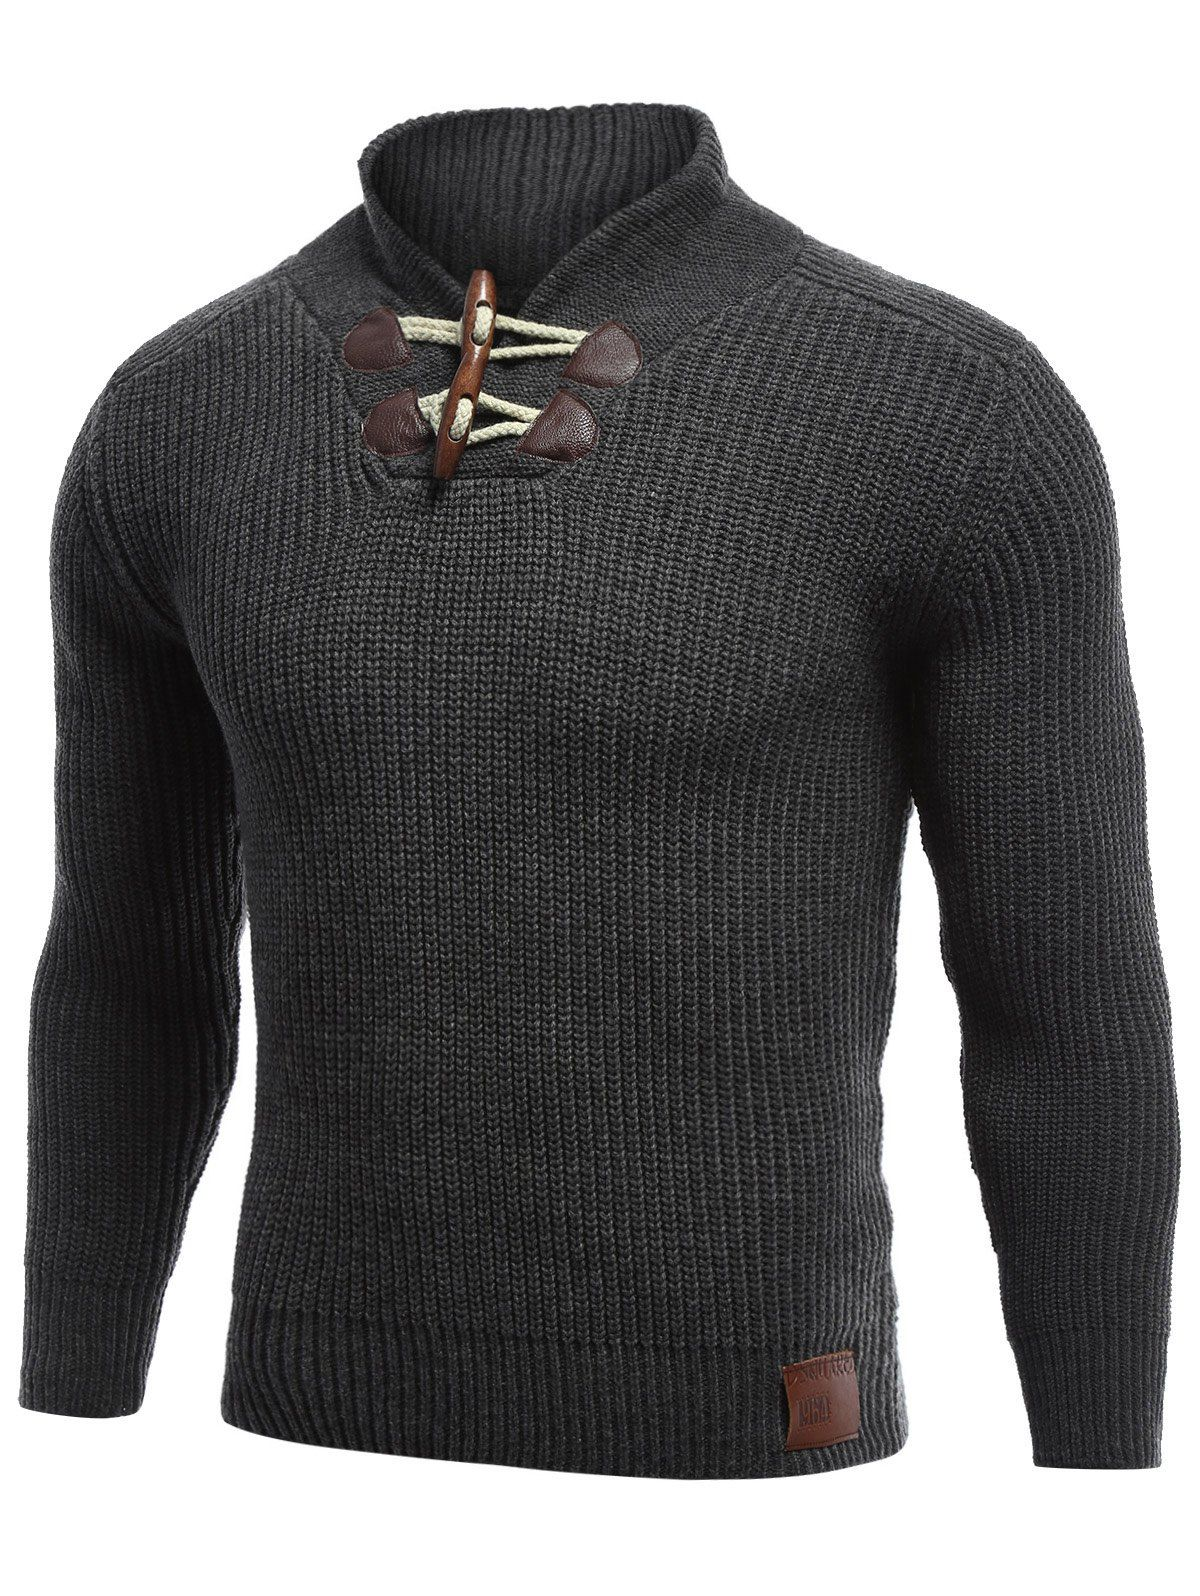 Flat Knitted Pullover Toggle Sweater. Cardigan Sweaters For MenMens ...